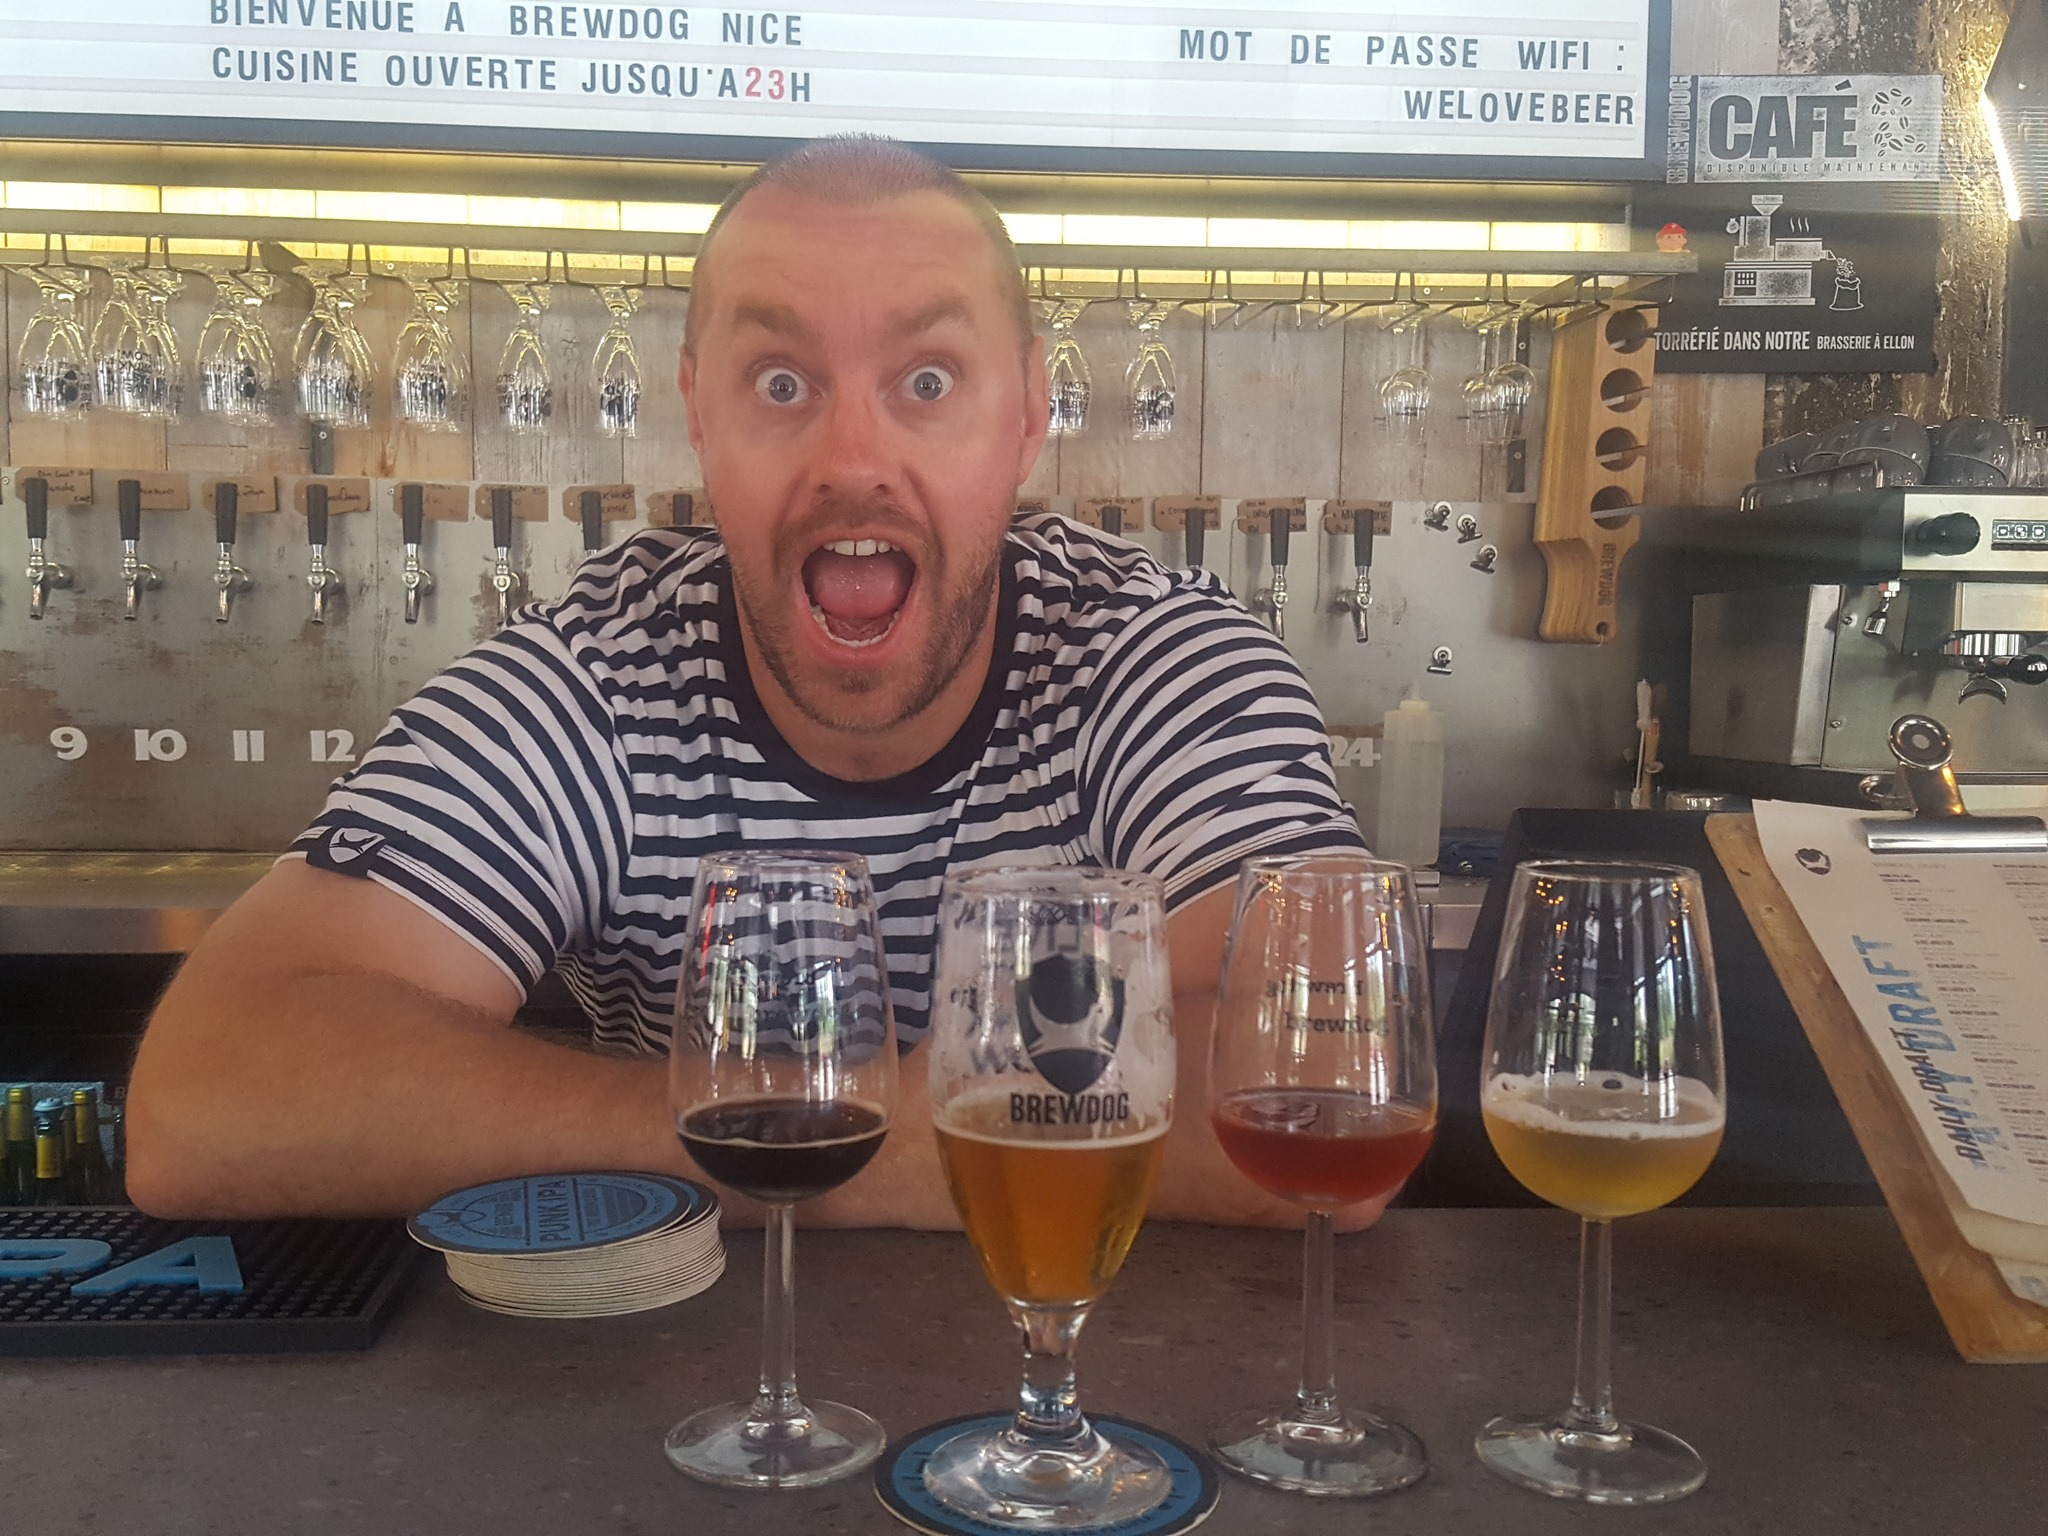 Adam Hardwick - Brewdog Nice - General manager